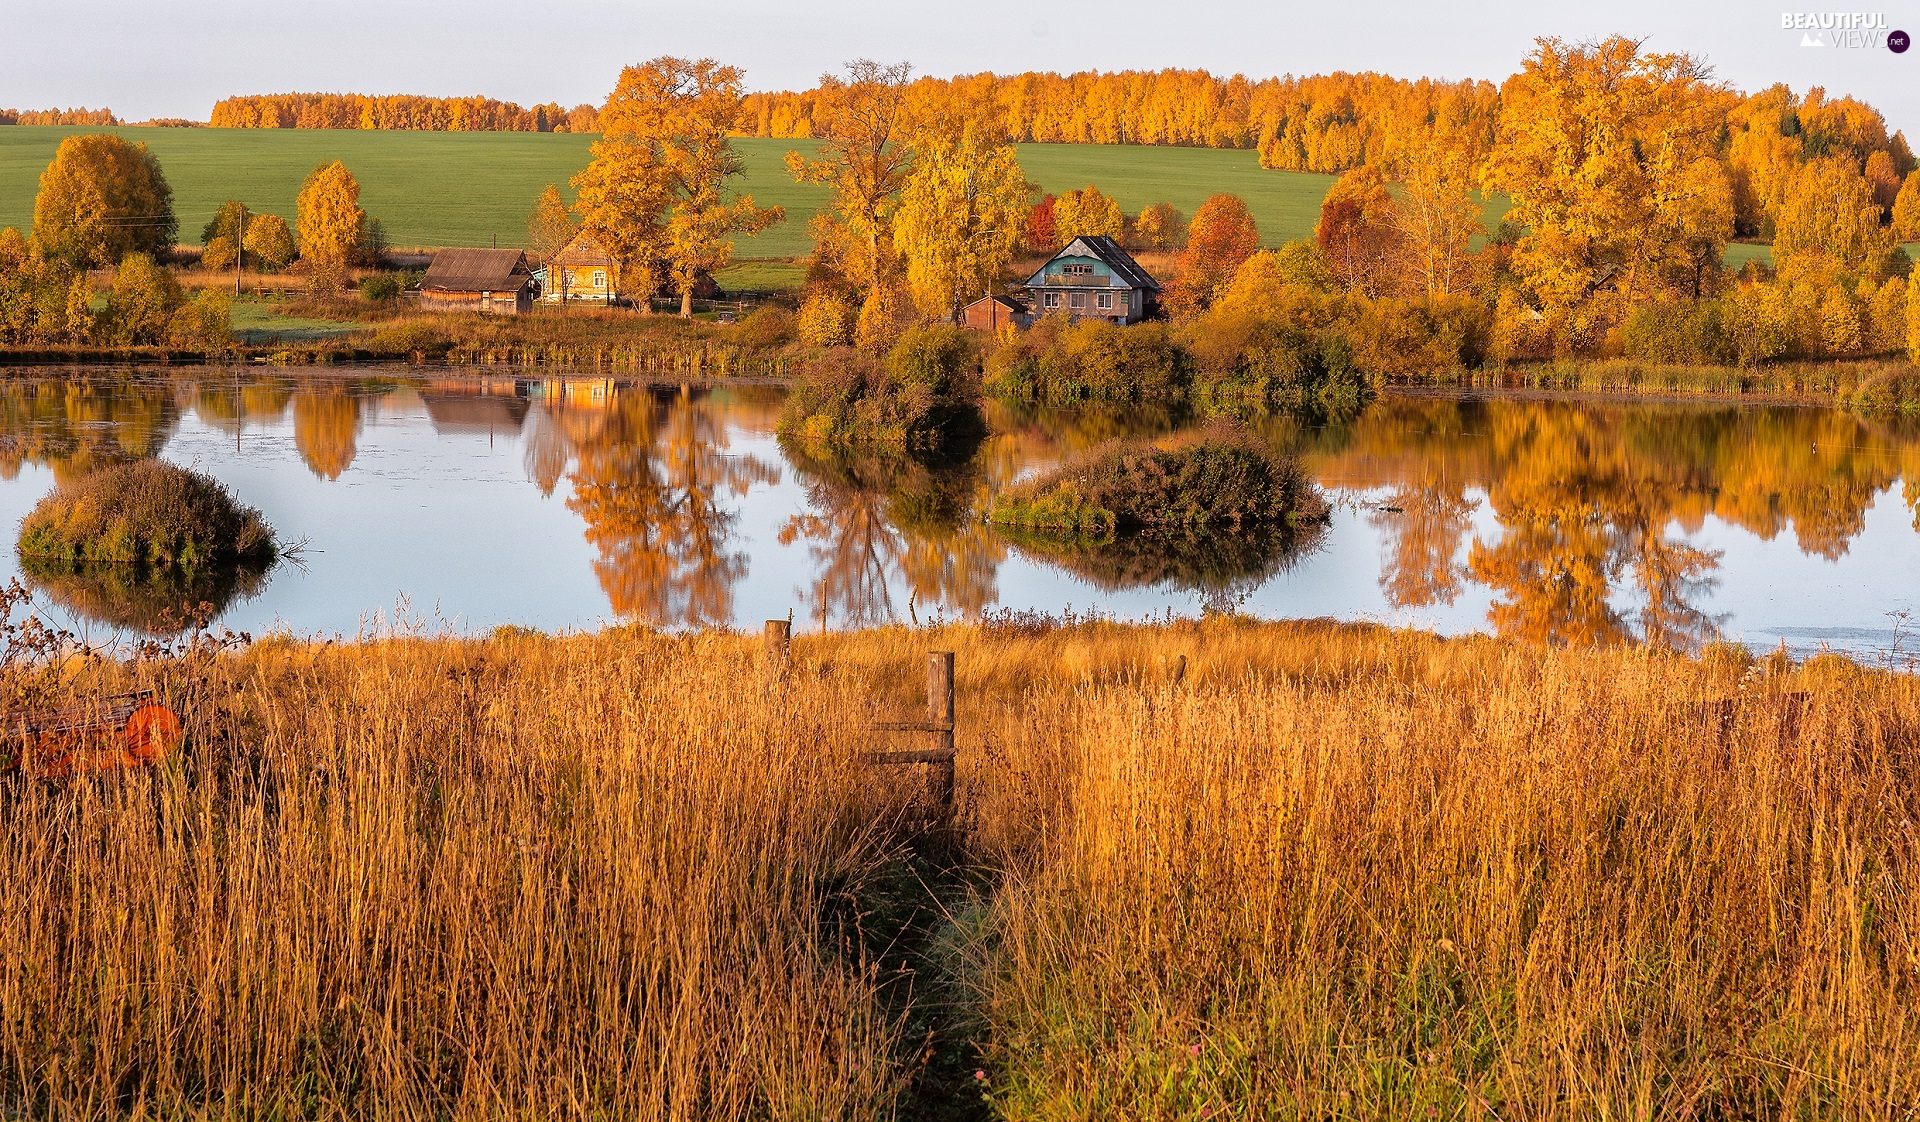 trees, River, Yellowed, Houses, autumn, viewes, grass